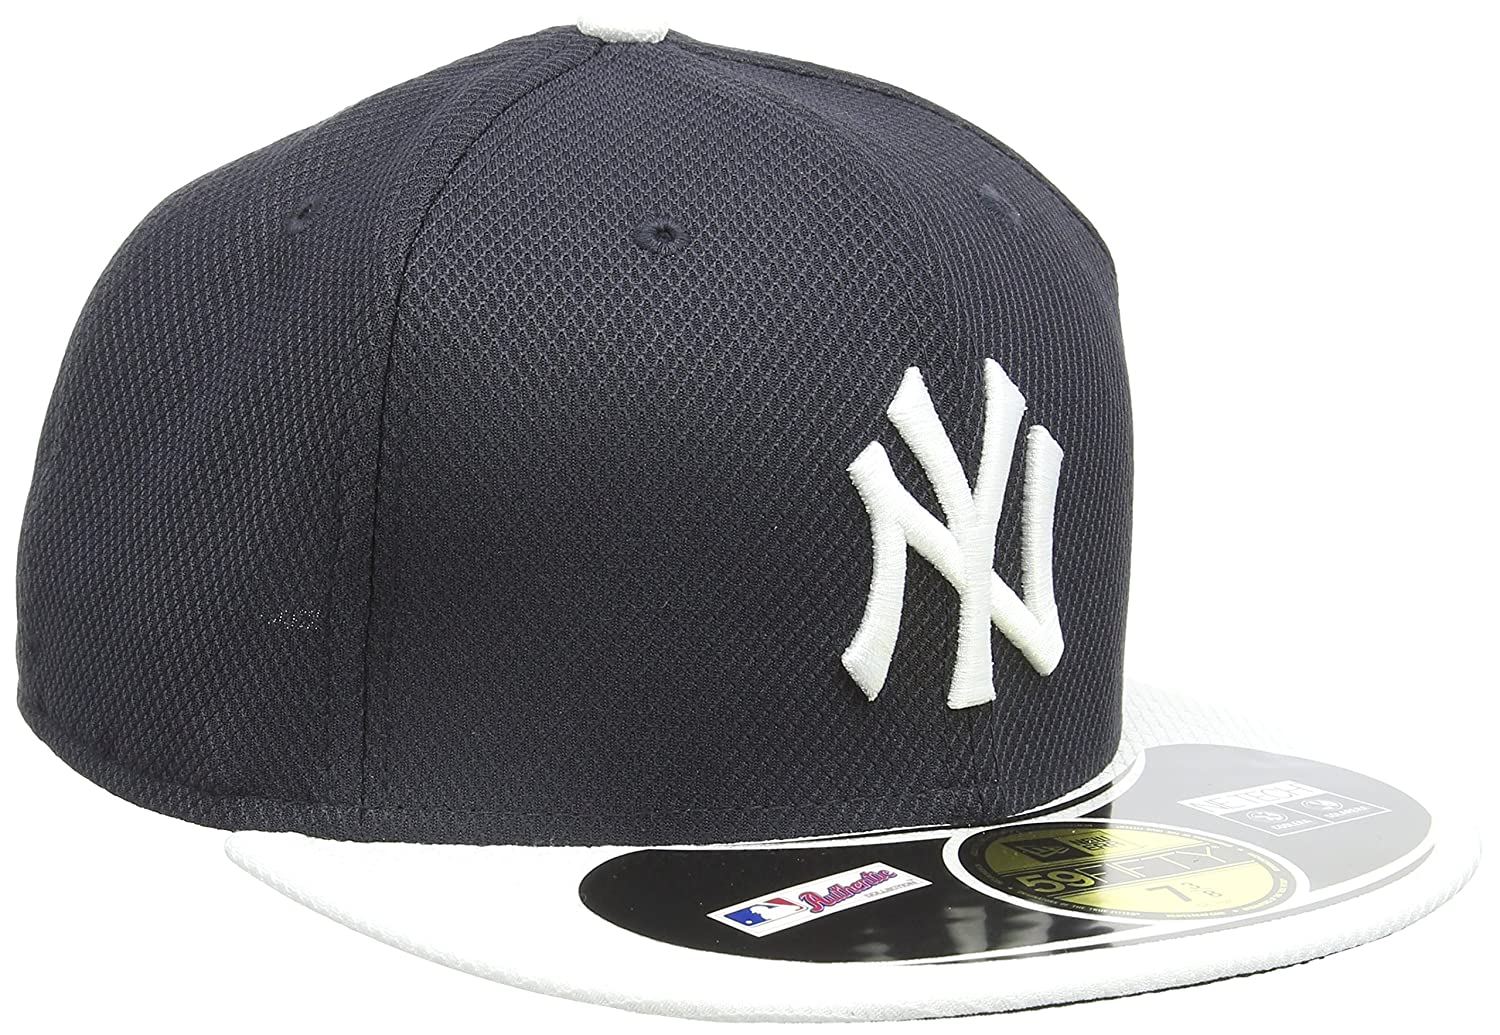 67542346abaa4 Amazon.com   MLB New York Yankees Batting Practice 59Fifty Baseball ...